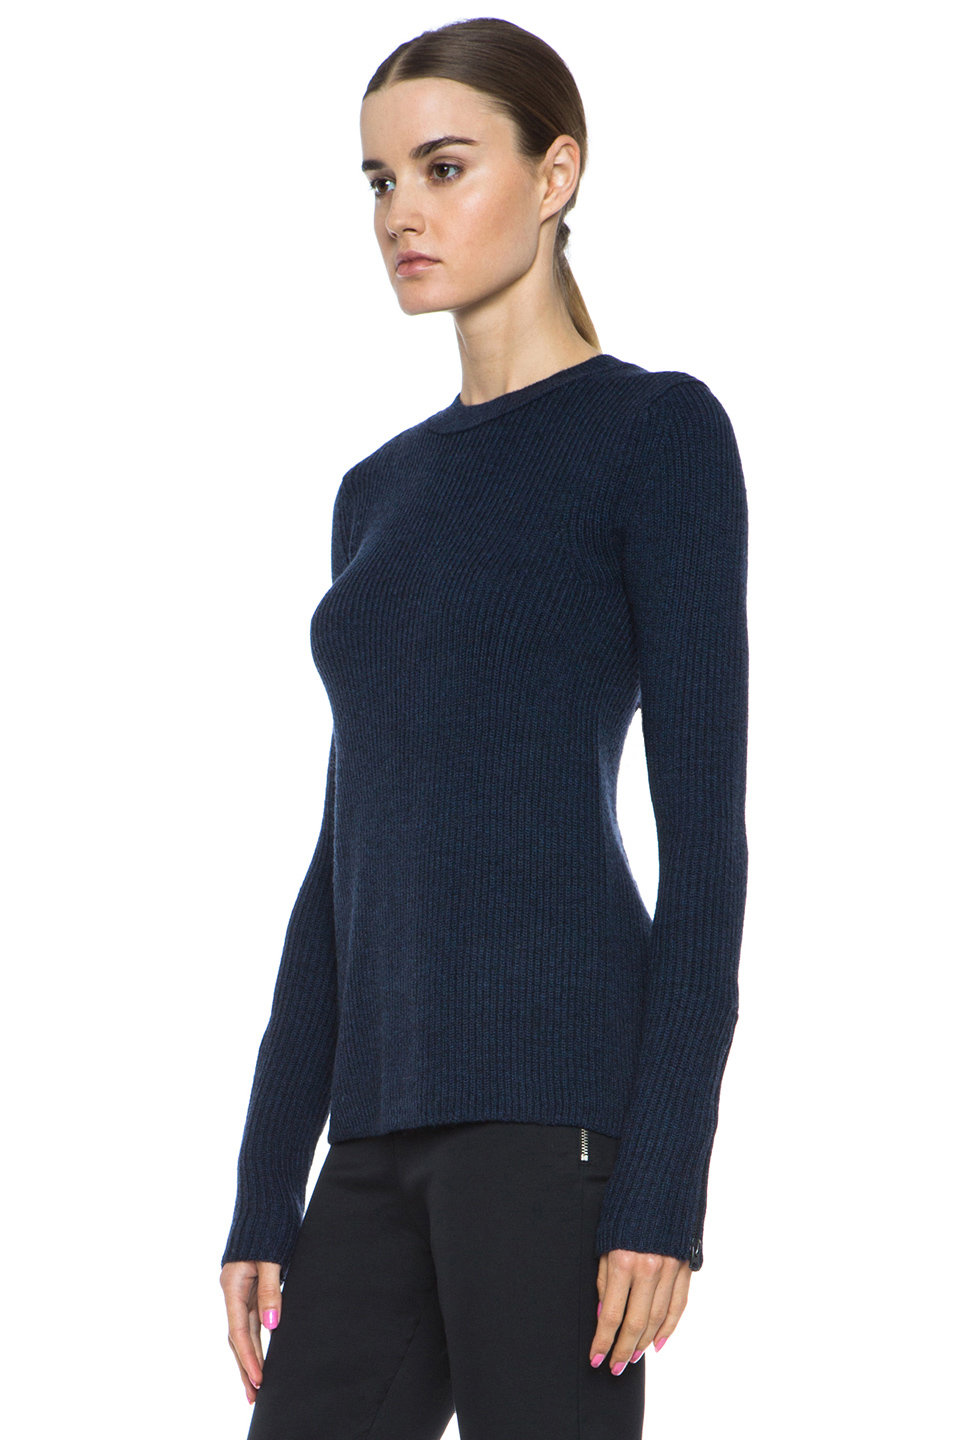 Acne Studios|Lala Merino Wool Sweater in Navy Melange